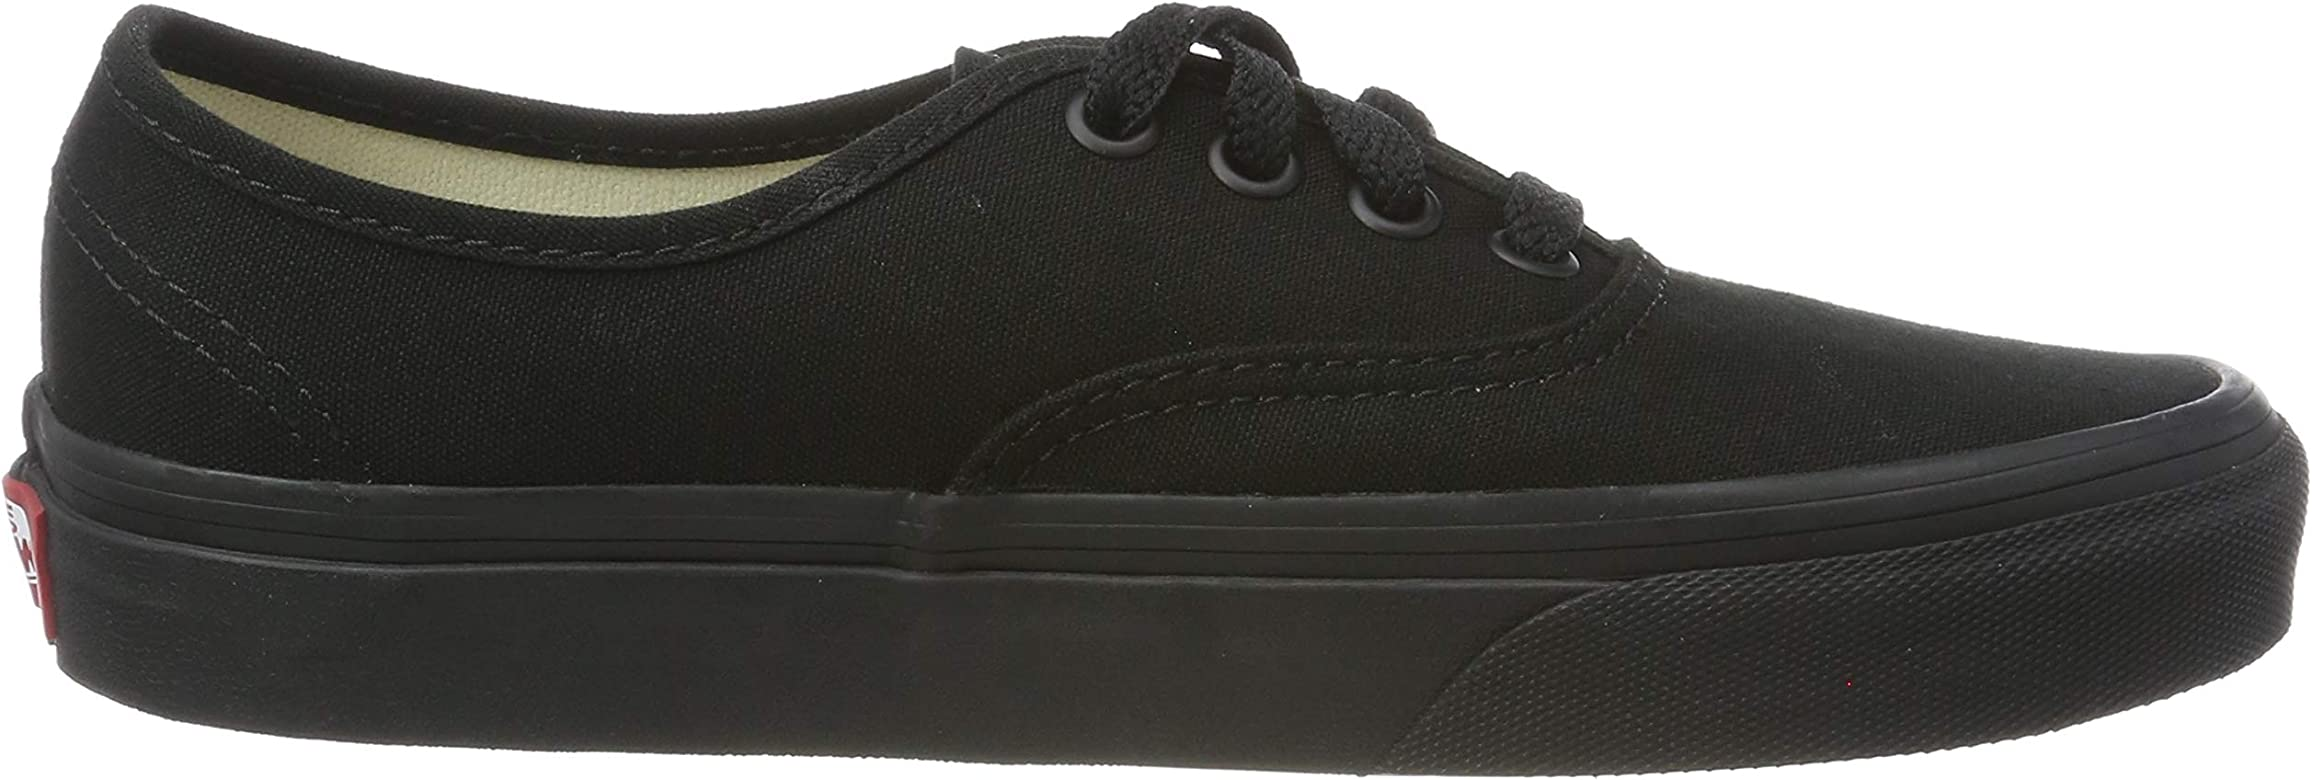 c585e179cc65e Amazon.com | Vans Unisex Authentic Black/Black Sneaker - 7.5 ...